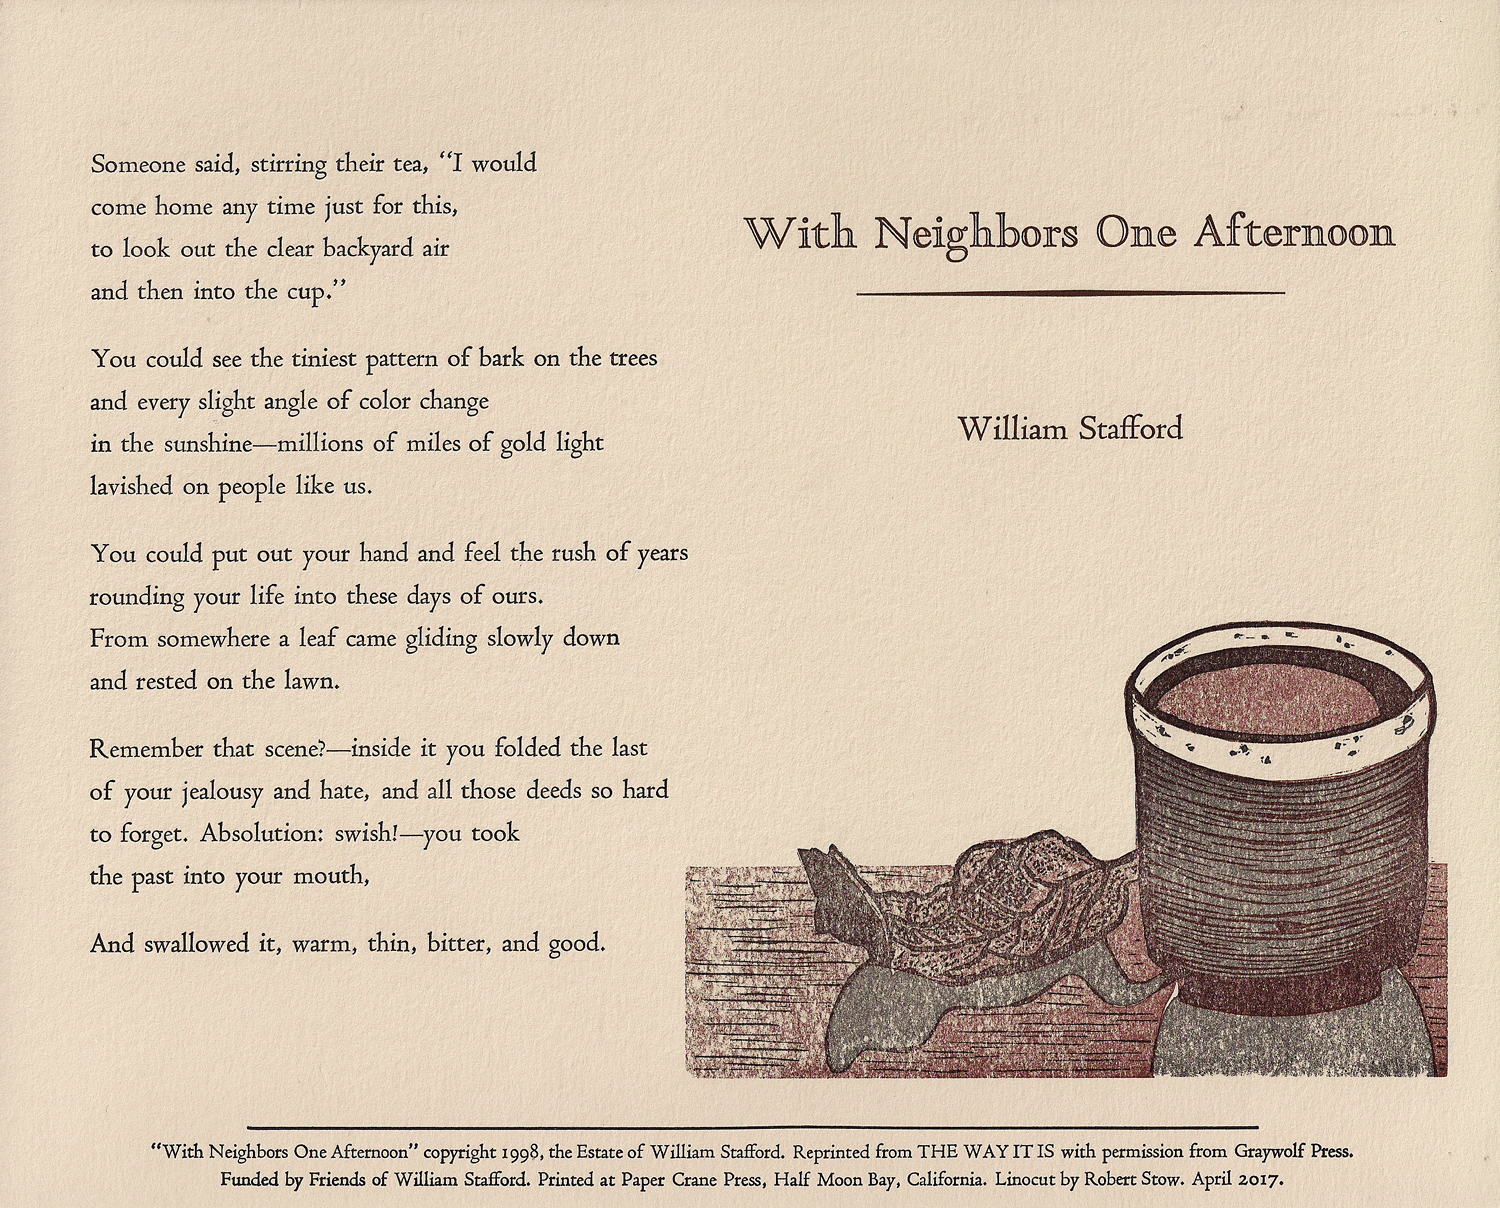 With Neighbors One Afternoon — Friends of William Stafford